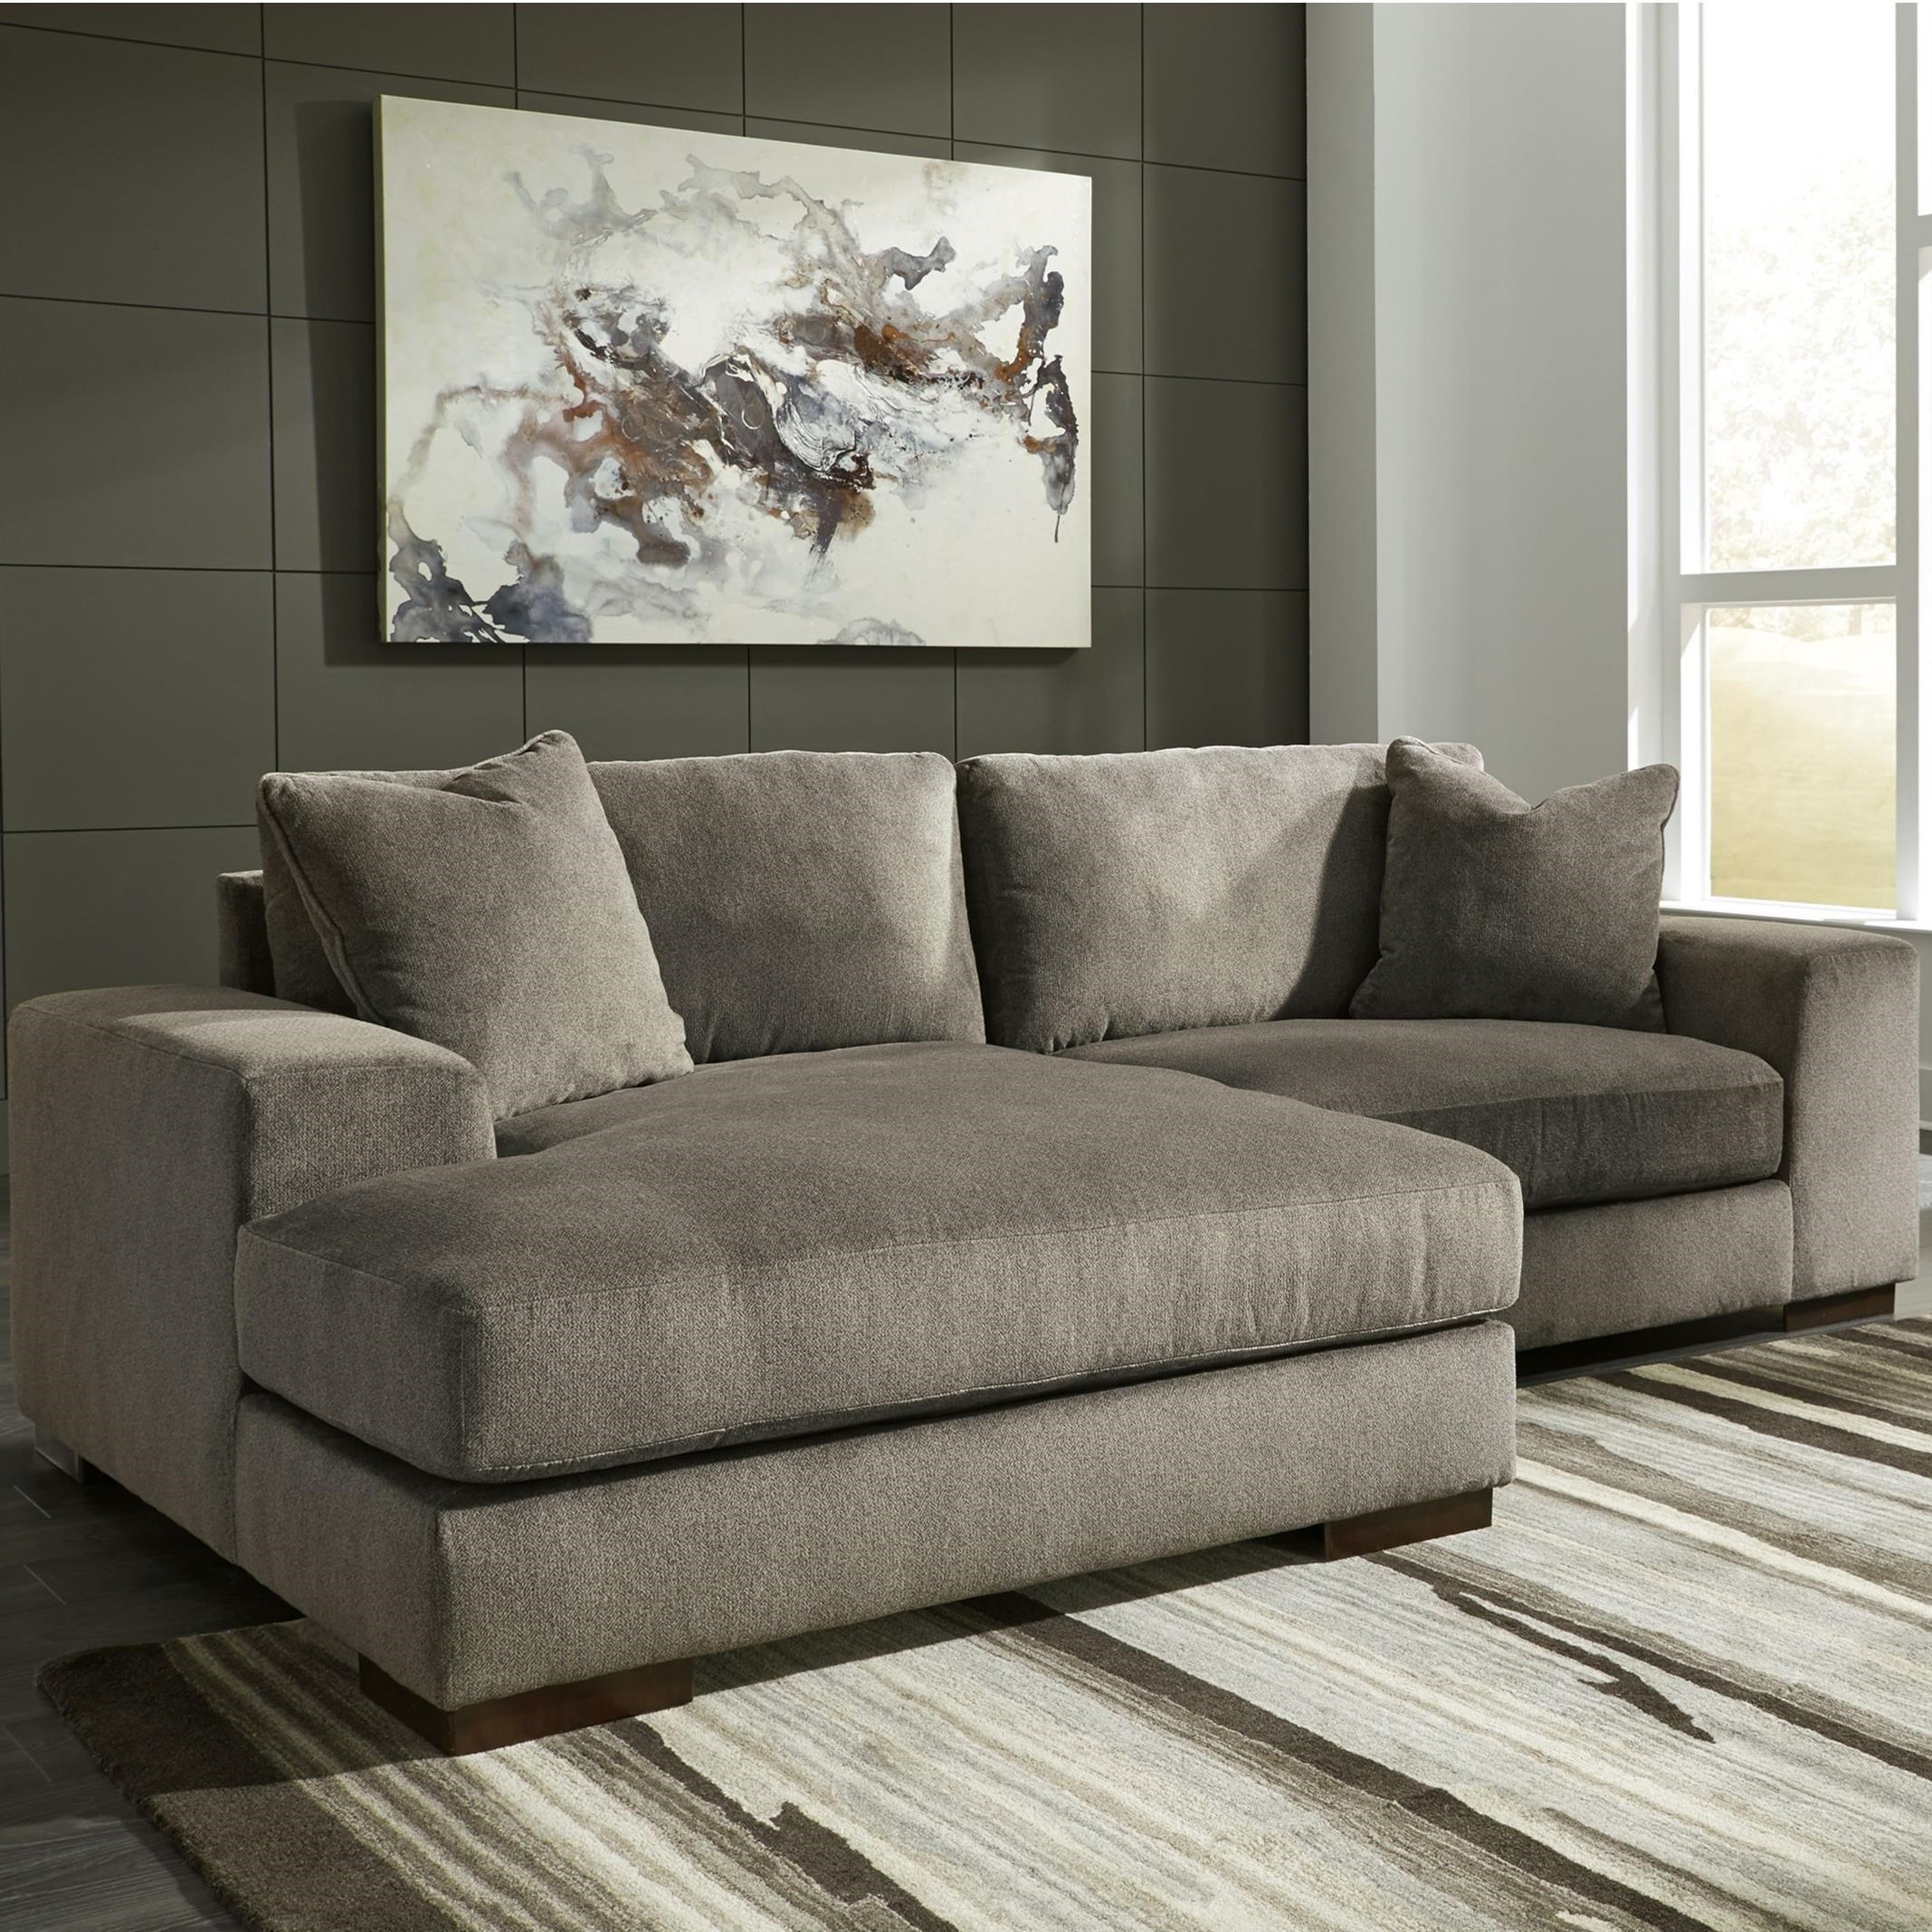 Benchcraft By Ashley Manzani2 Piece Sectional ...